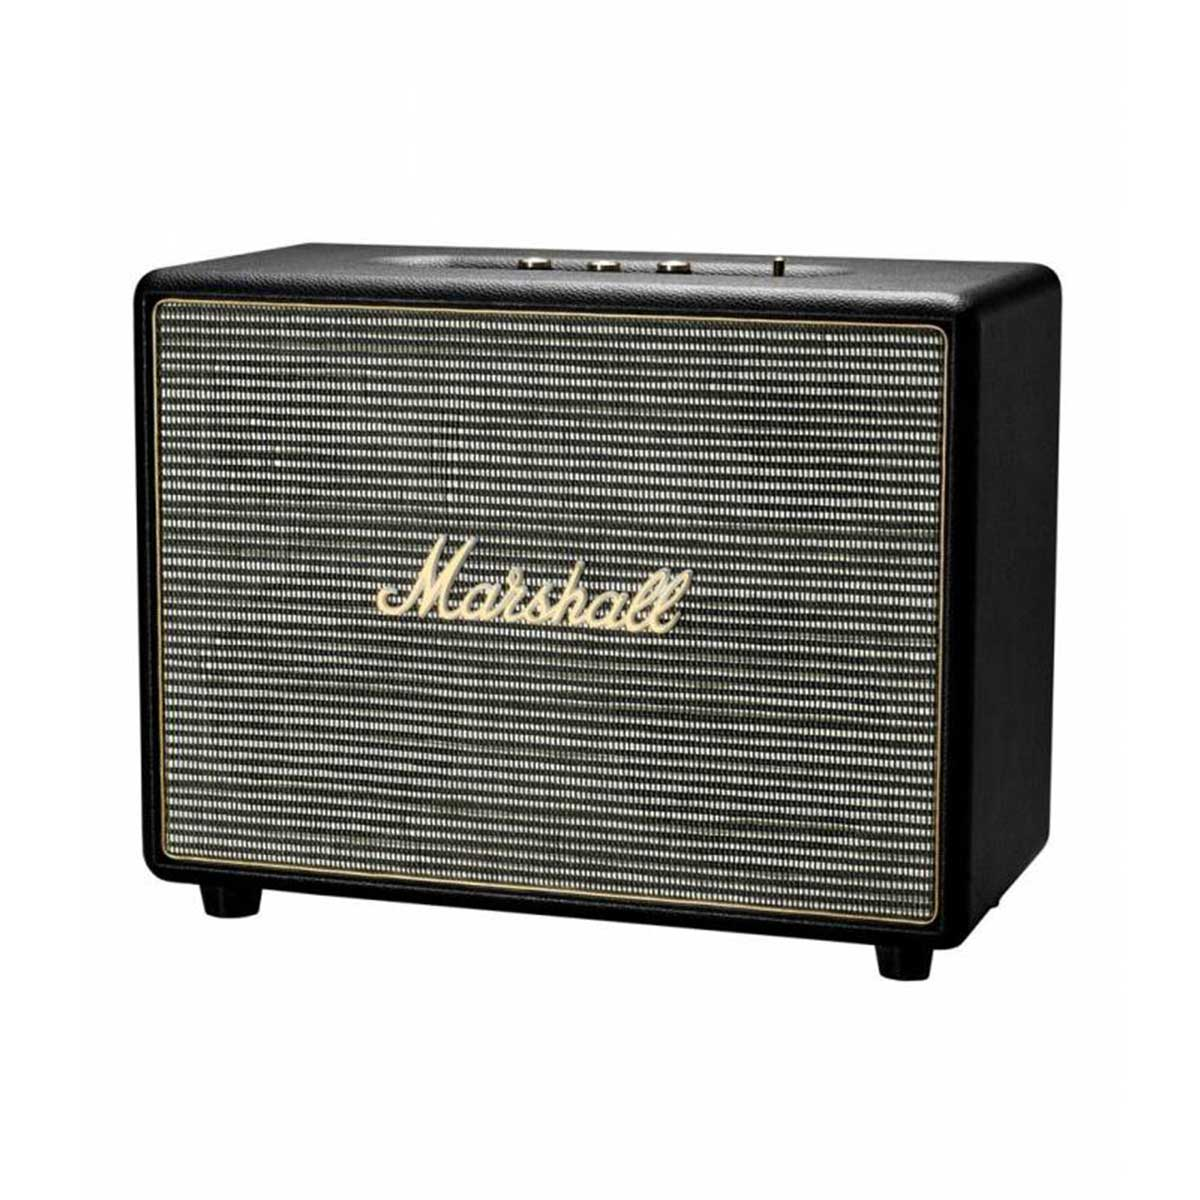 Marshall - Woburn II Black Bluetooth Speaker  - Black